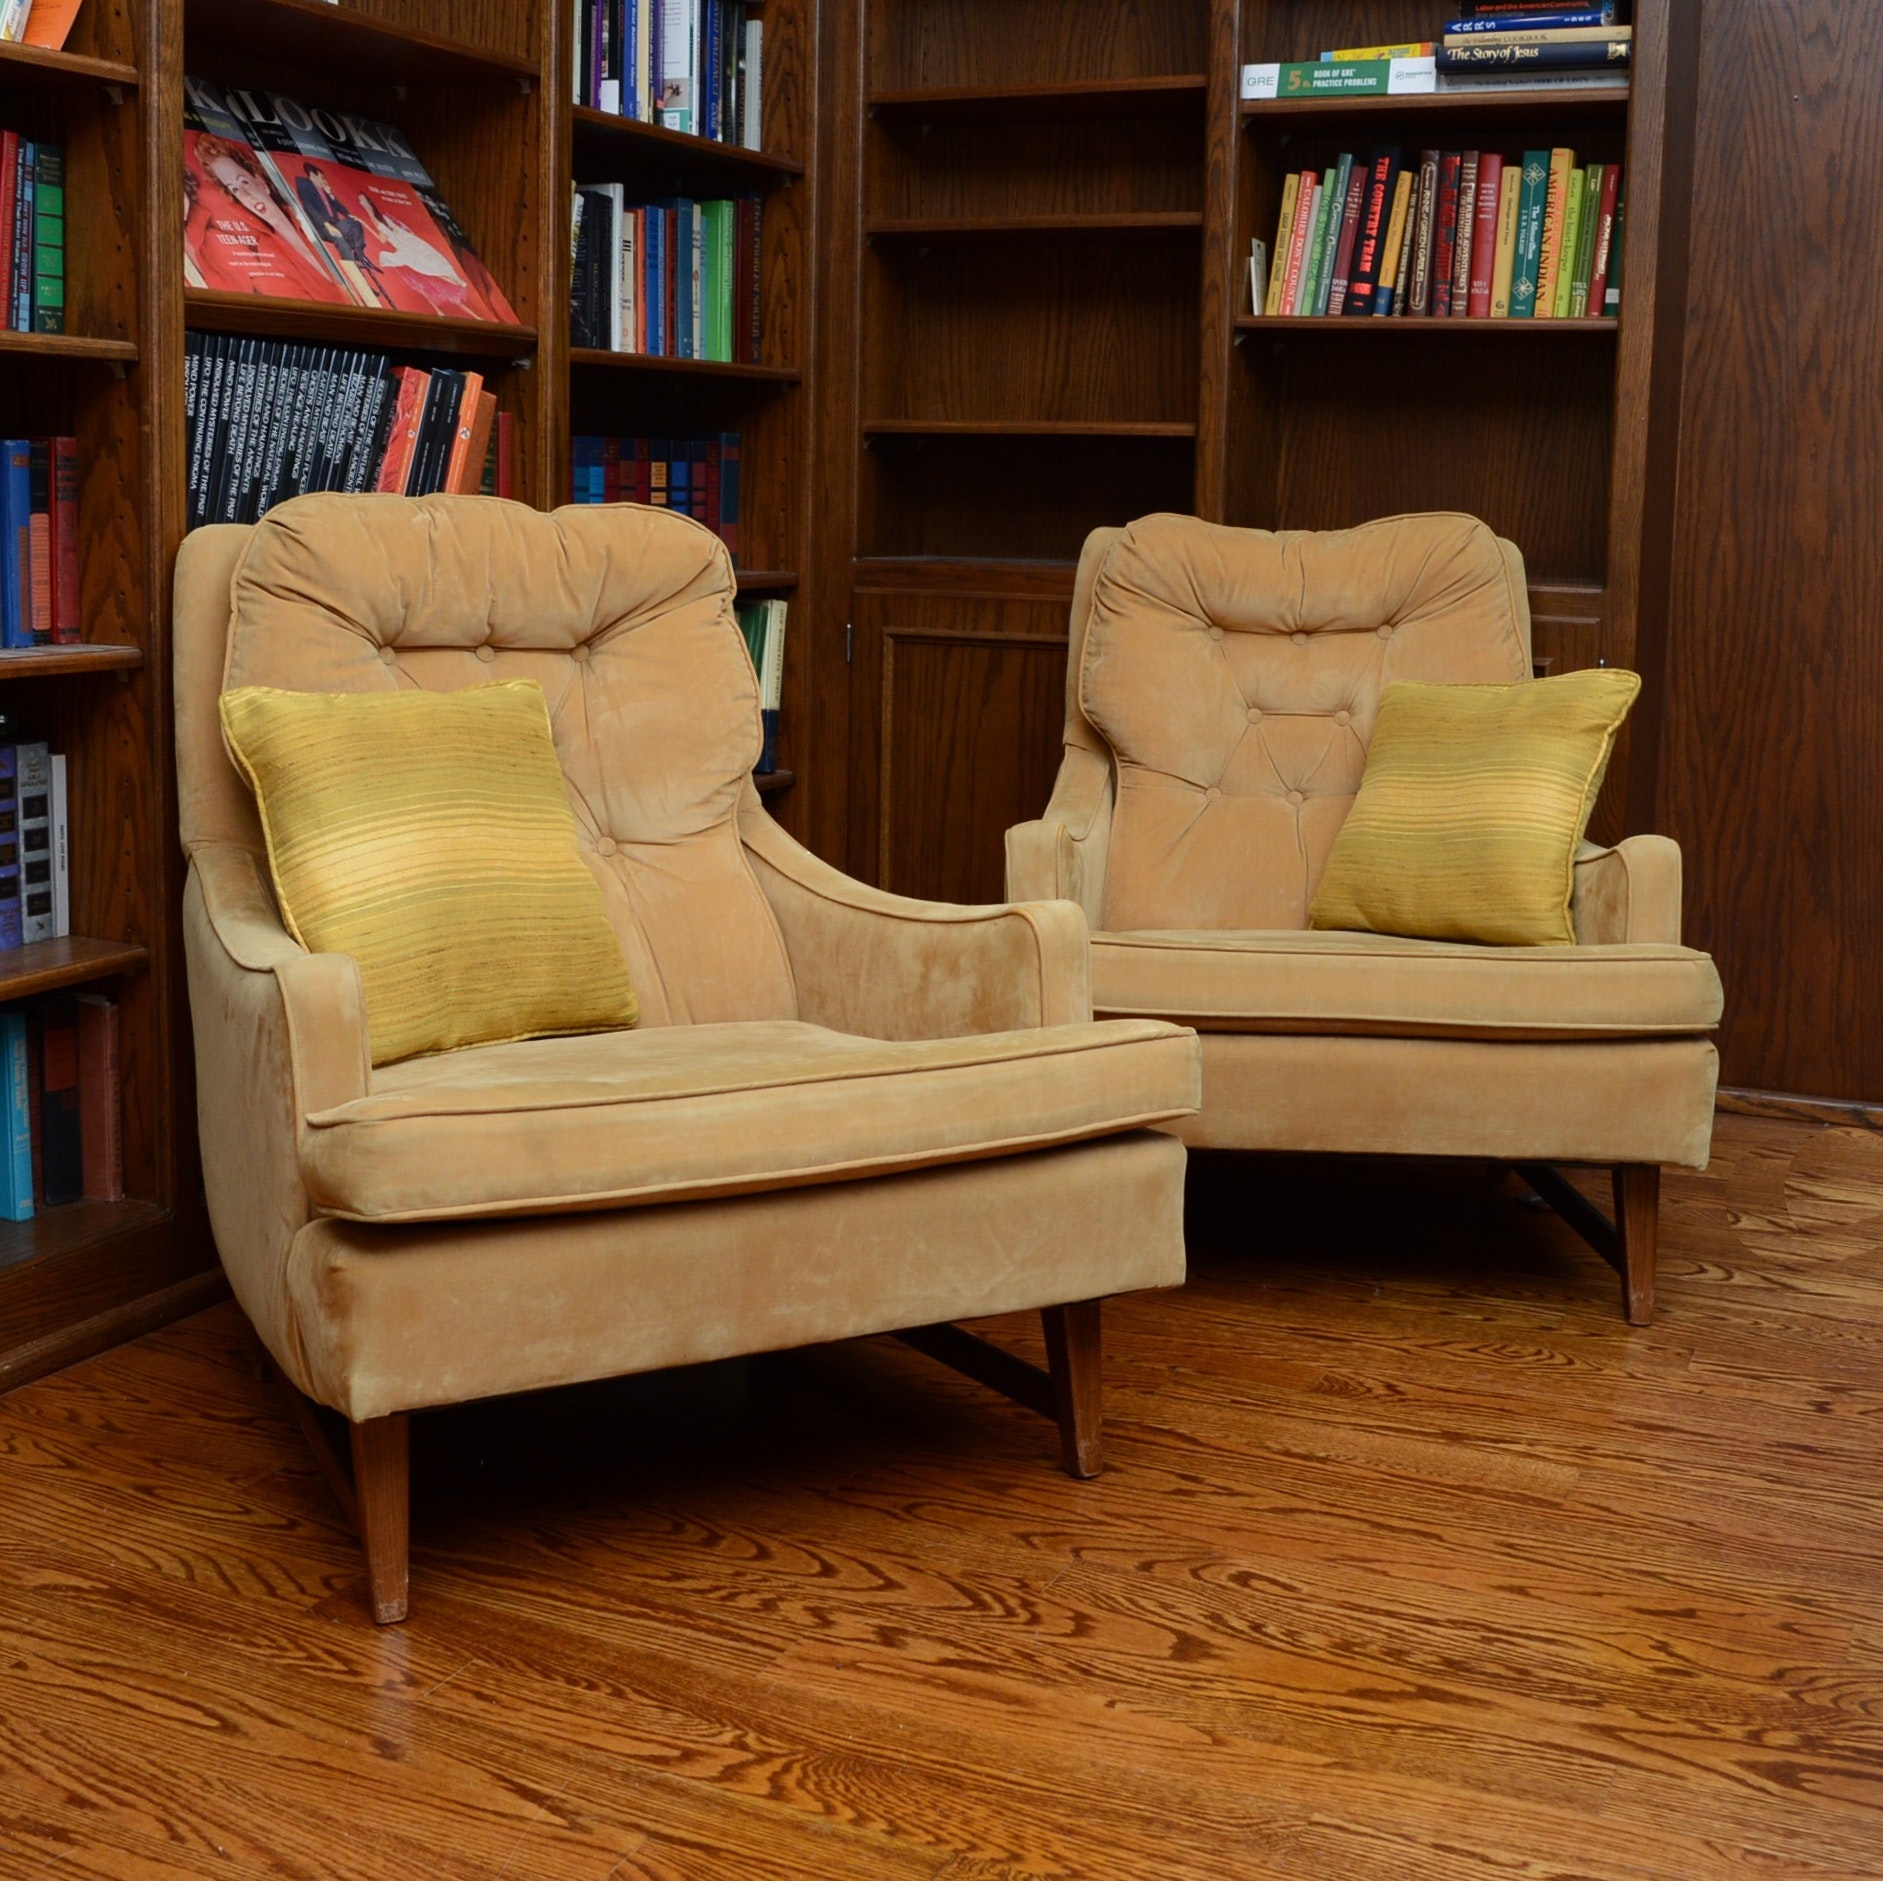 Pair of Suede Upholstered Mid Century Modern Chairs